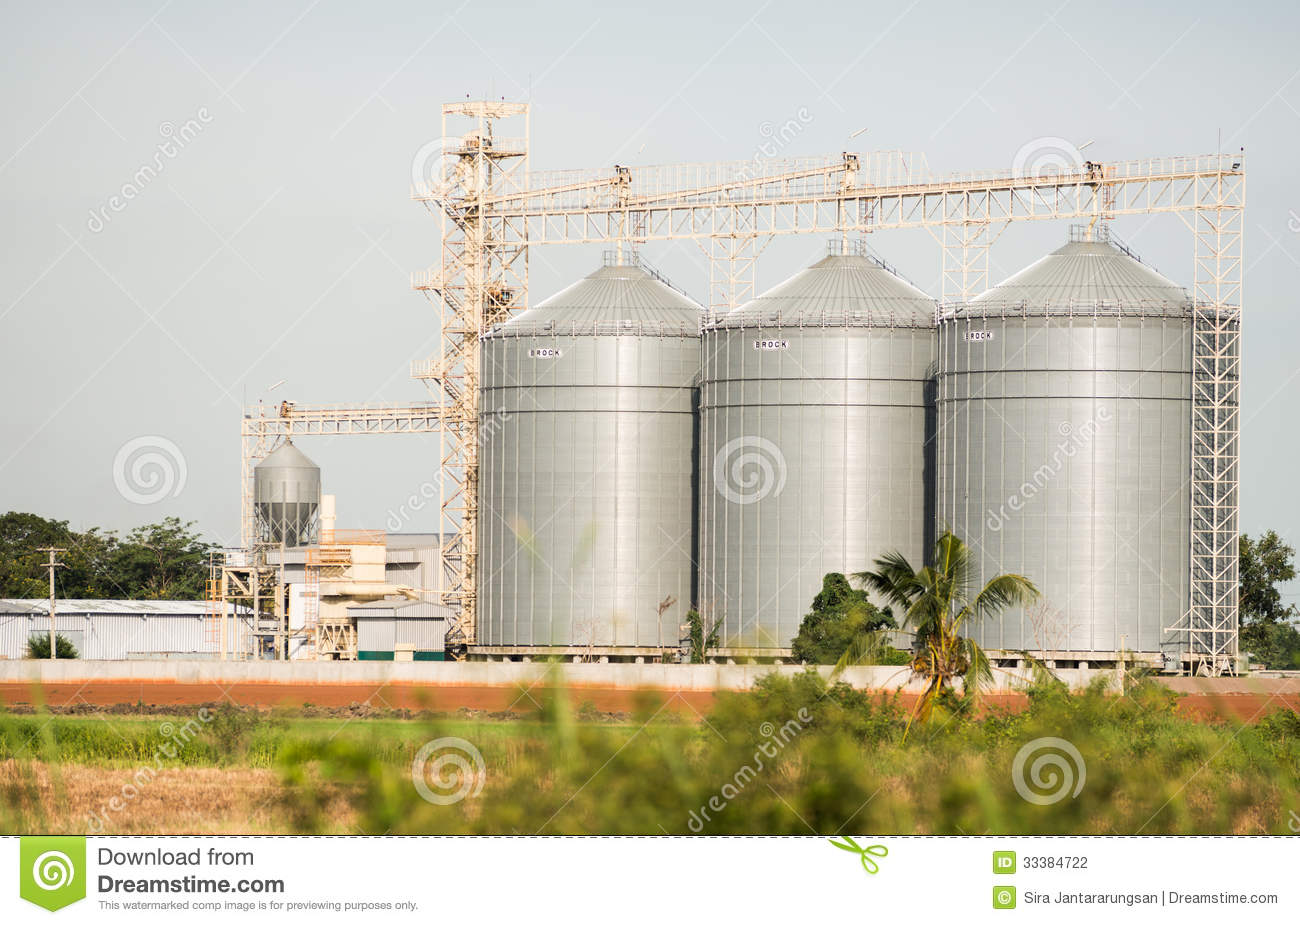 The Silo In Animal Food Production Stock Photo - Image of